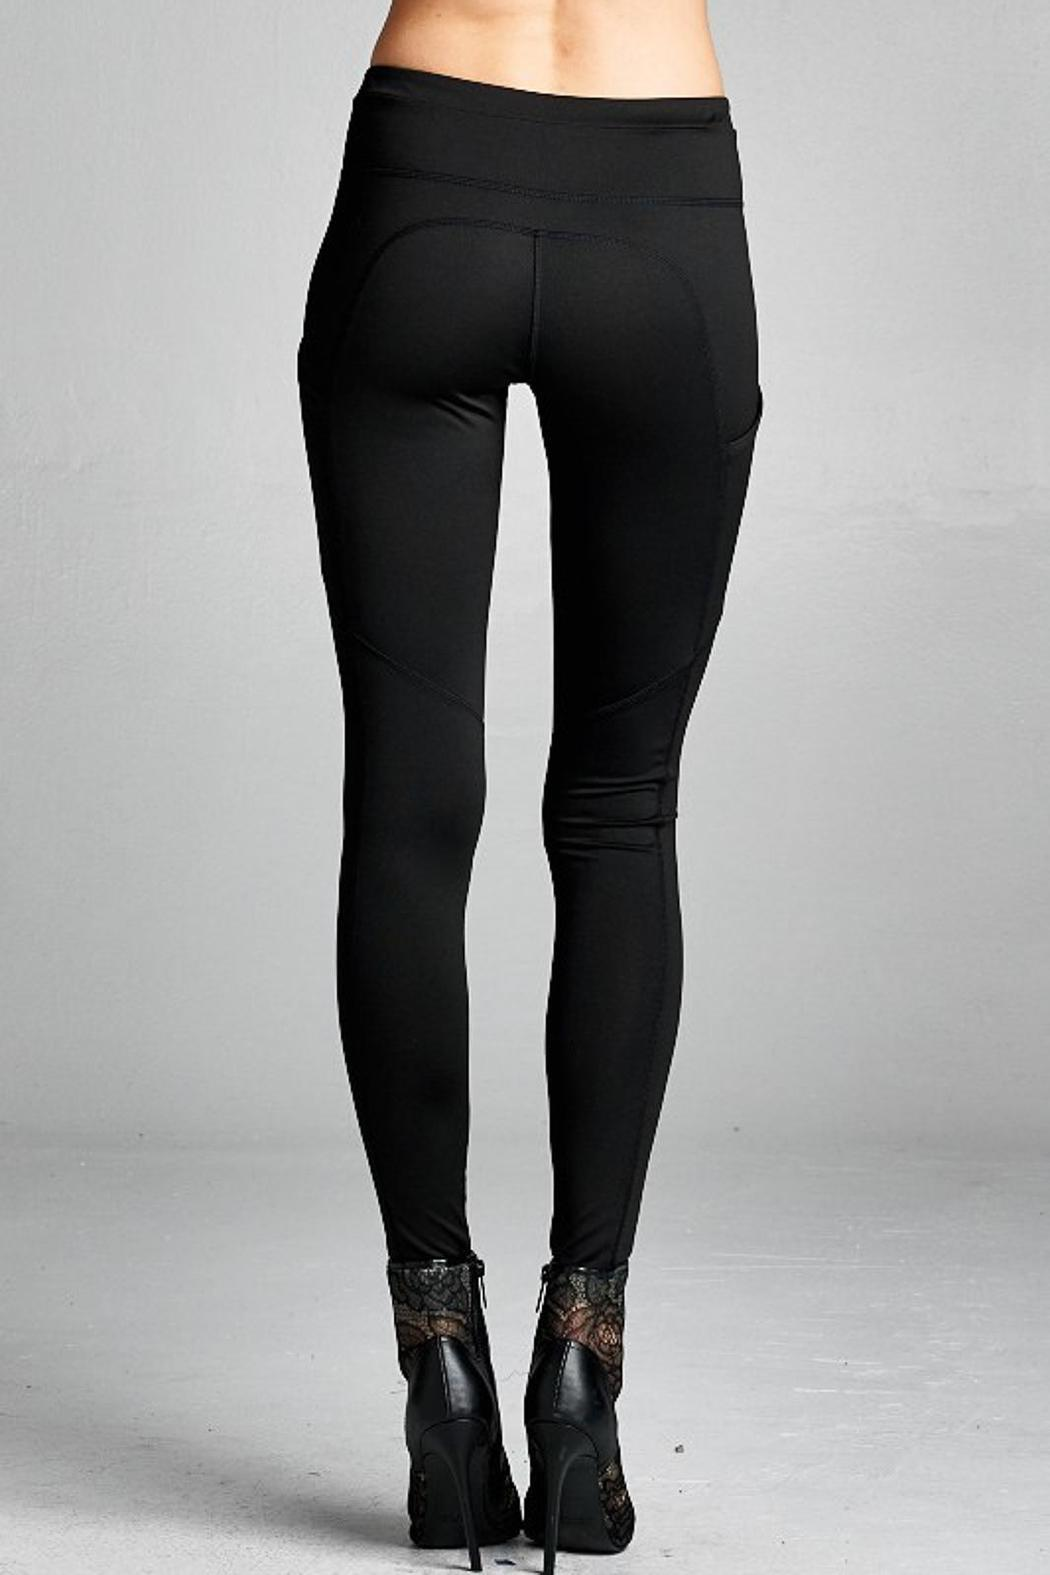 People Outfitter Street Yoga Pants - Back Cropped Image